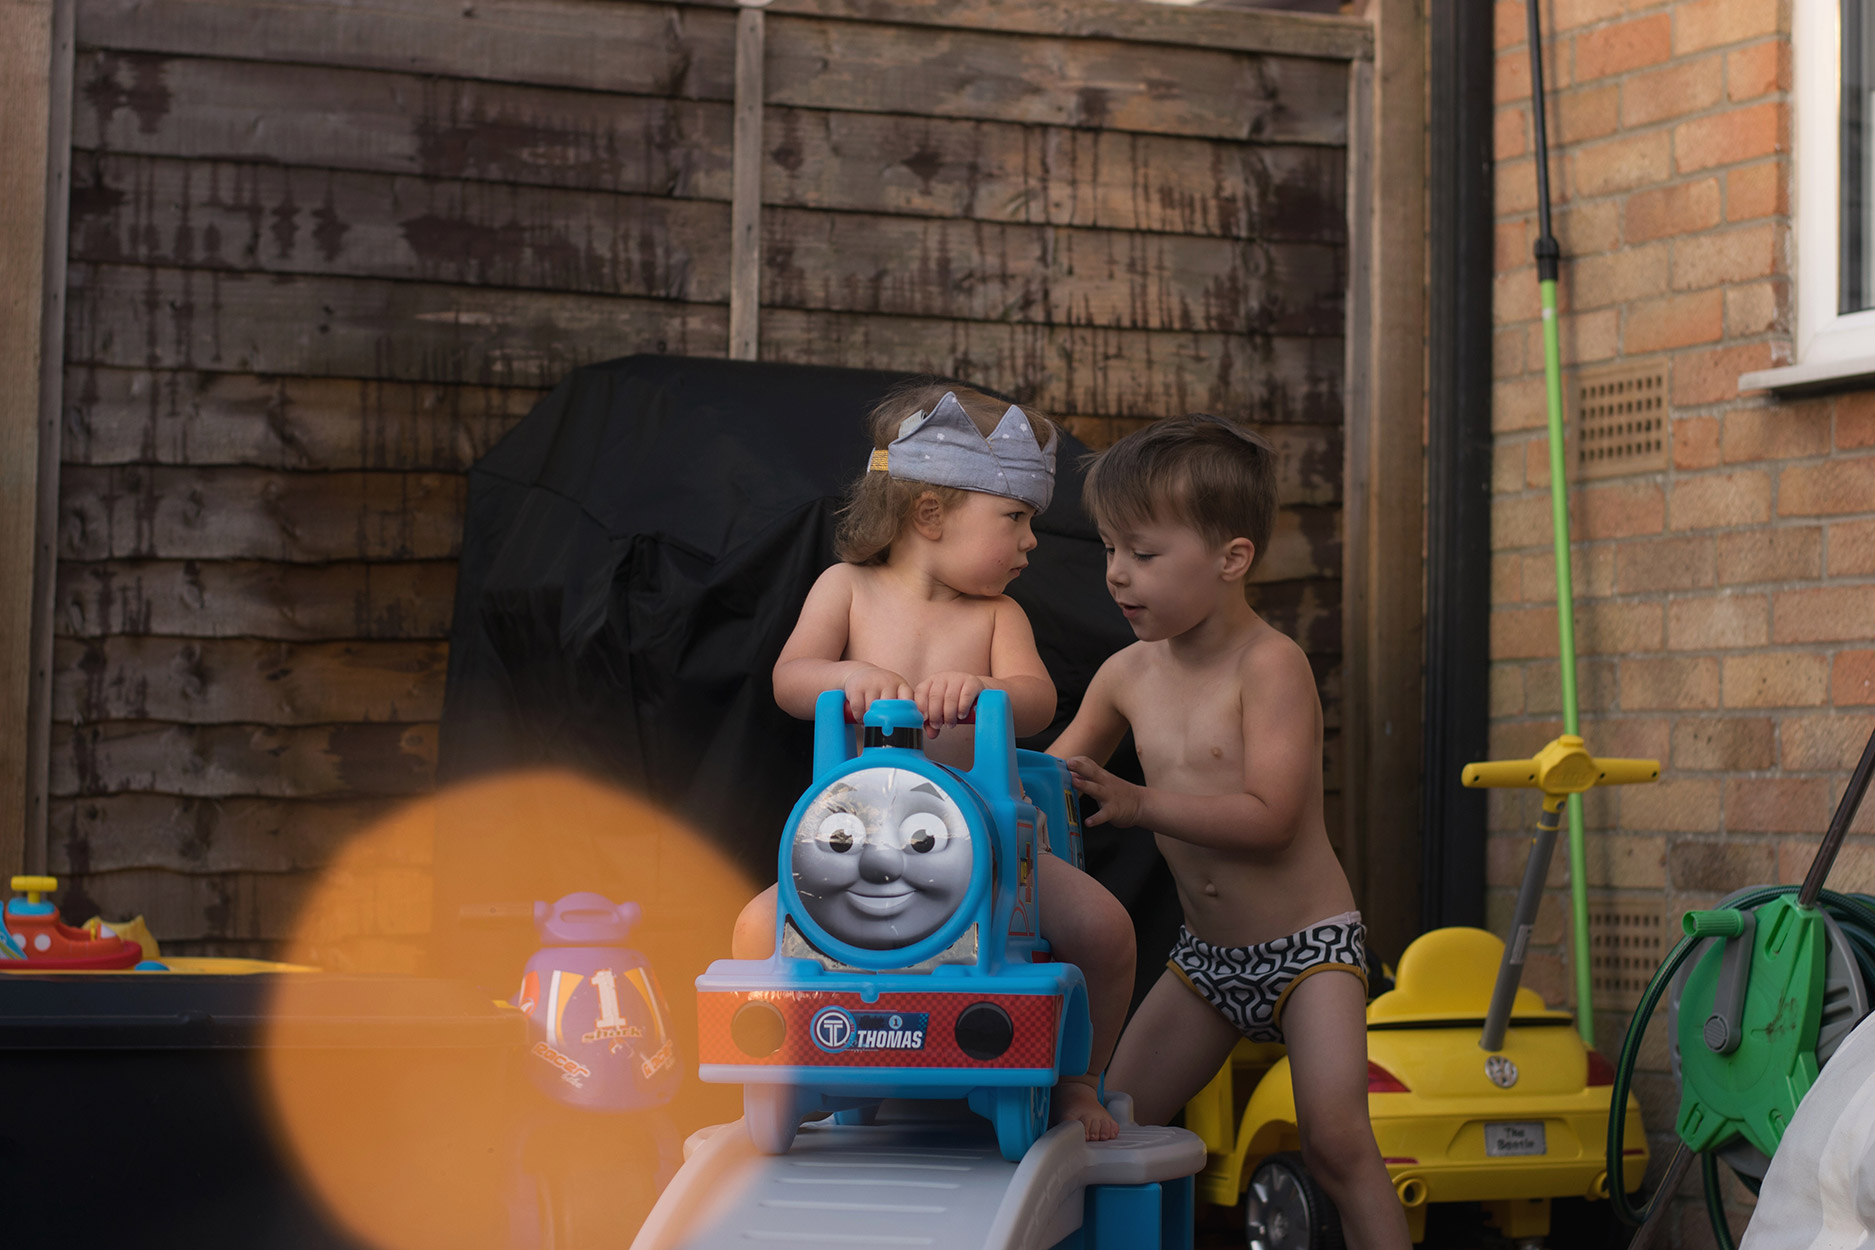 Toddler playing on Thomas the Tank Engine rollercoaster toy wearing fabric crown on birthday